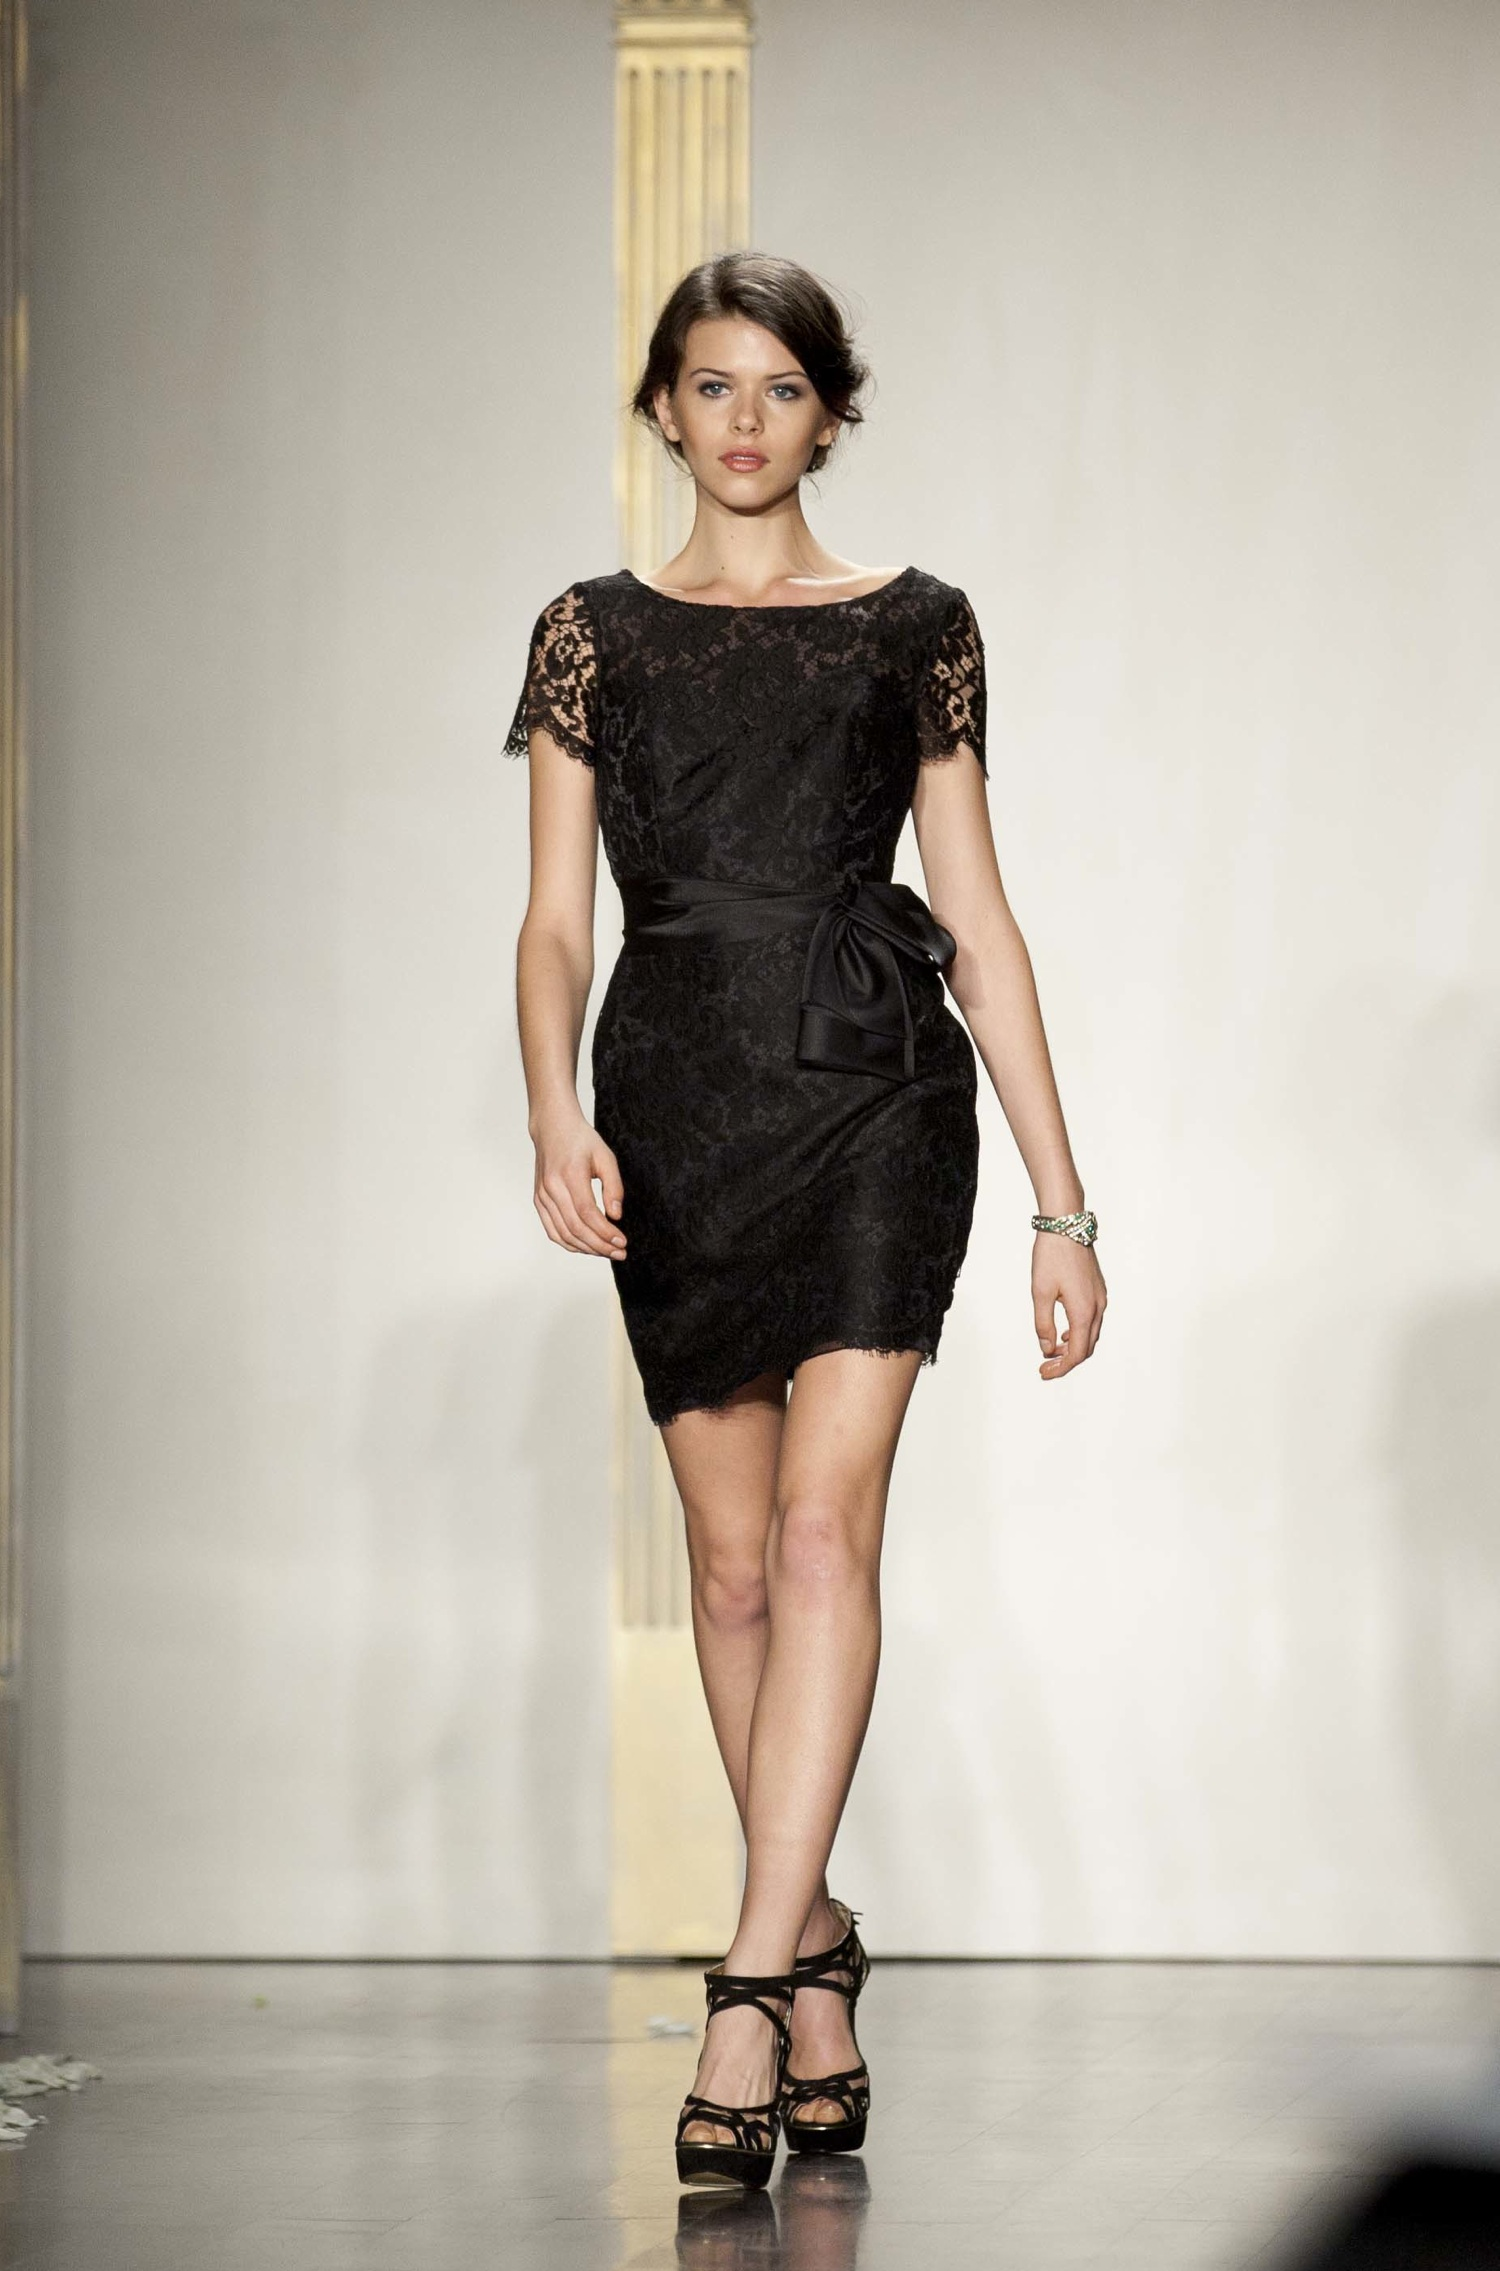 Black Bridesmaid Dresses With Cap Sleeves : Short black bridesmaid dress with lace cap sleeves